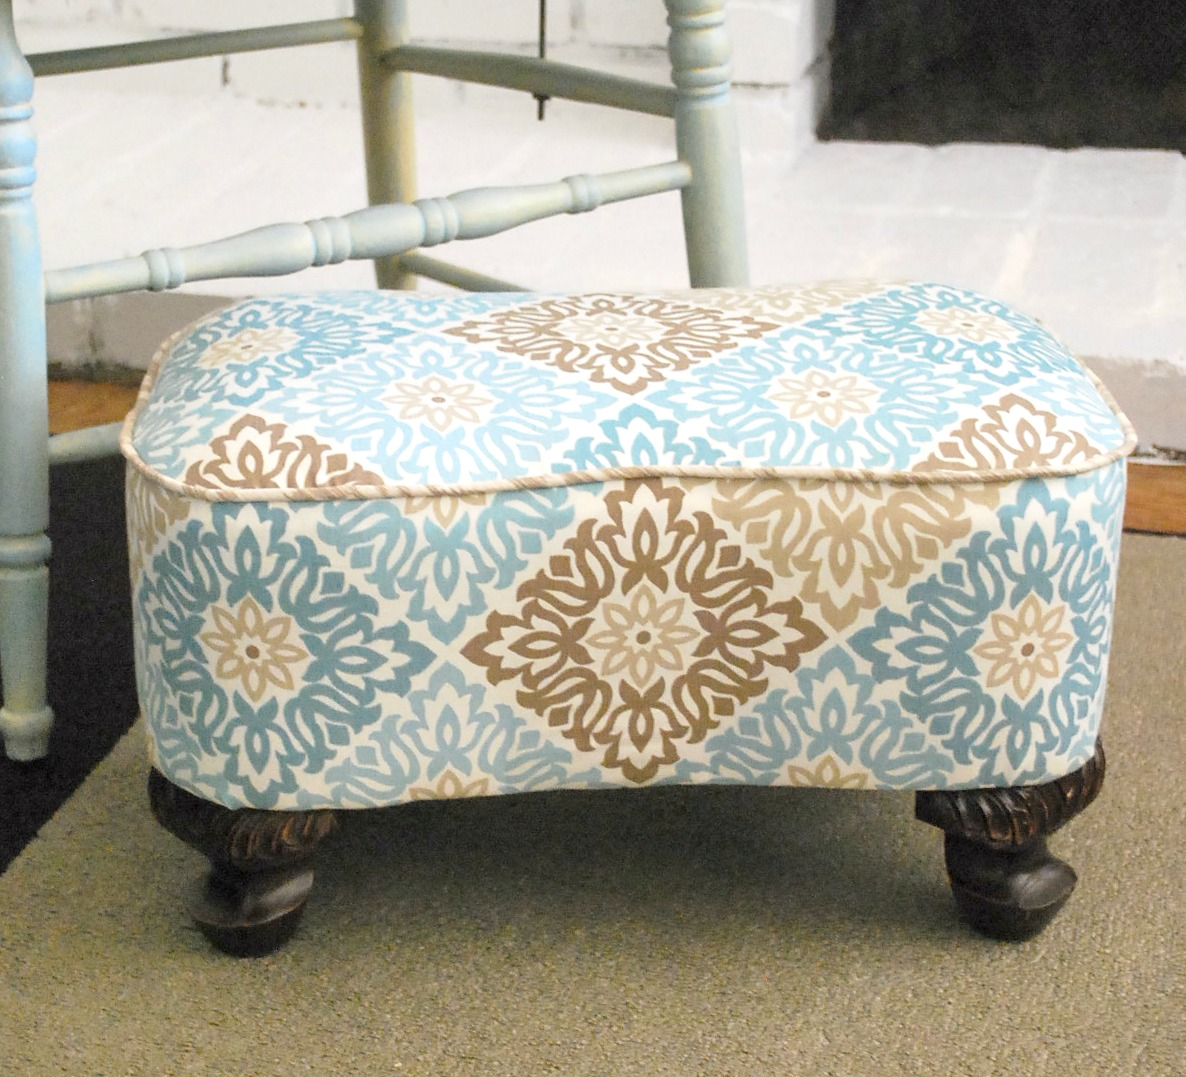 Upholstered footstool makeover with piping - by The Silly Pearl